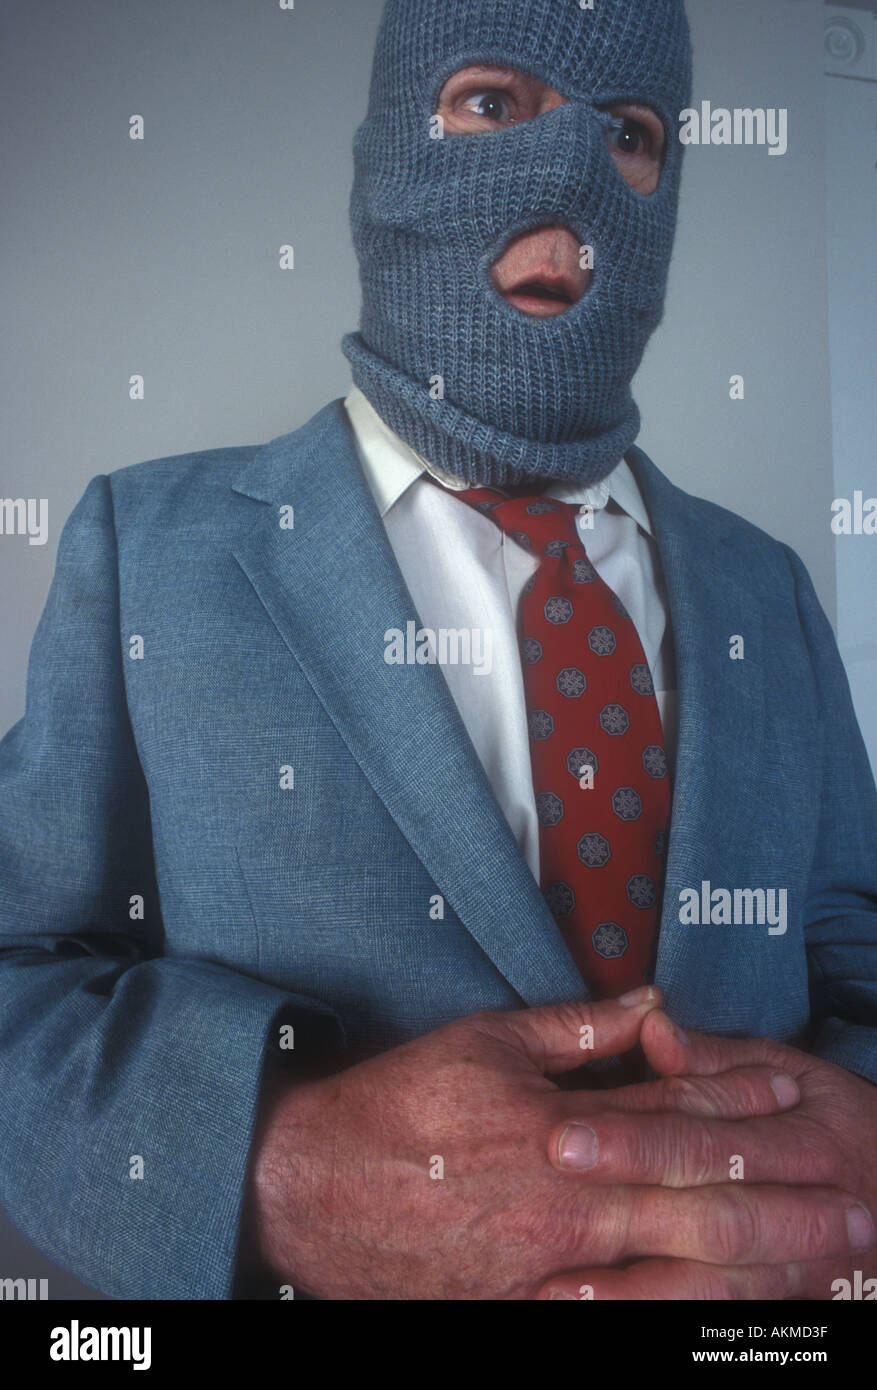 White Collar Crime Stockbild